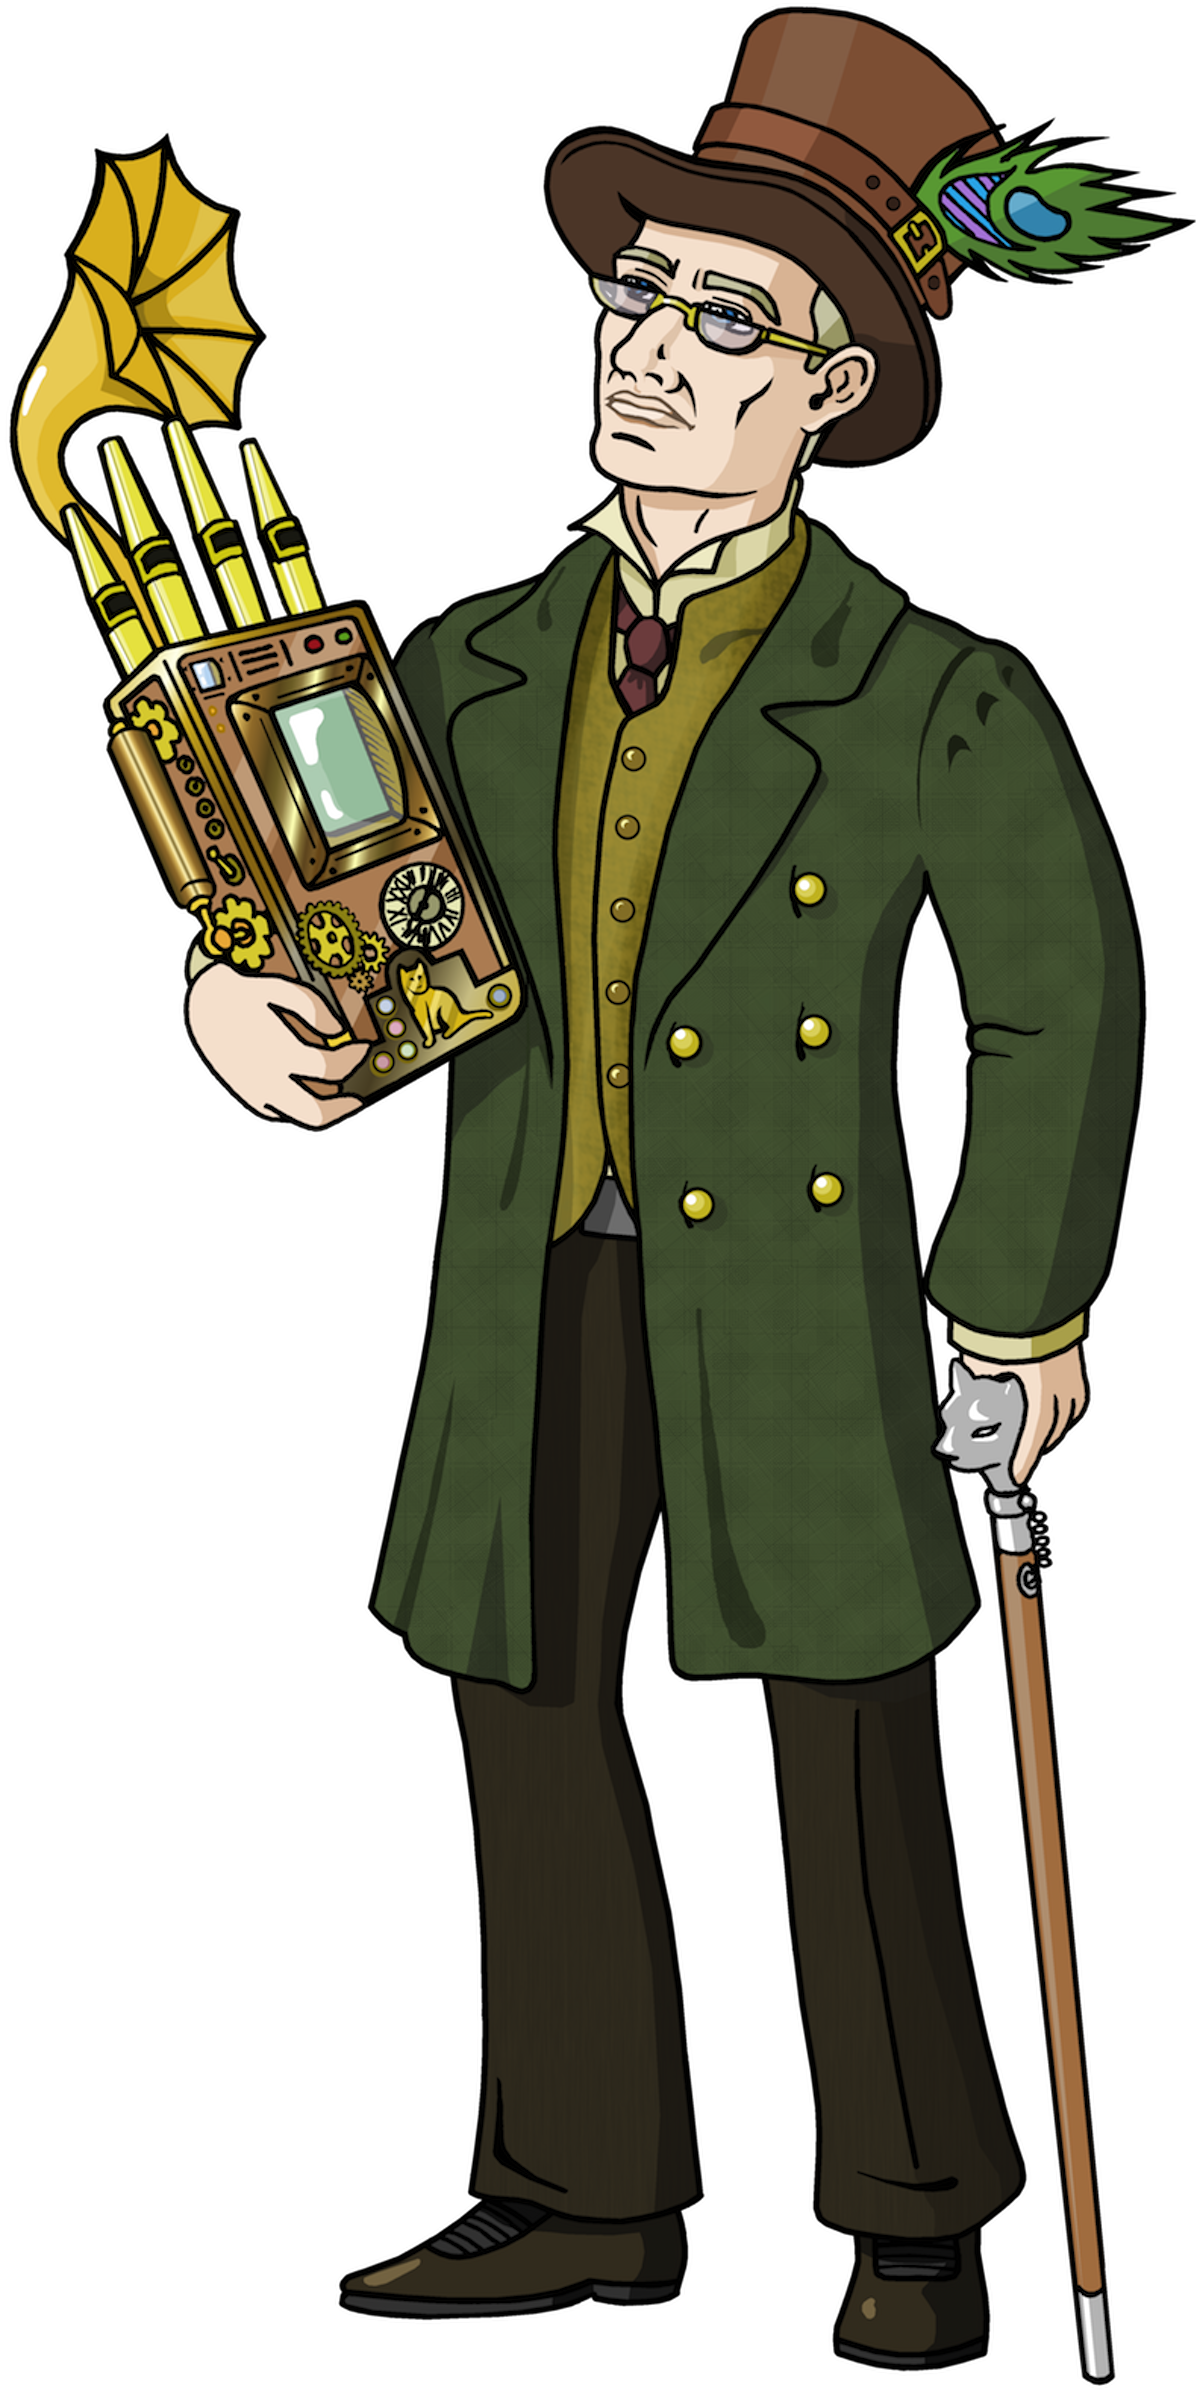 Mark keating gets animated. Steampunk clipart person